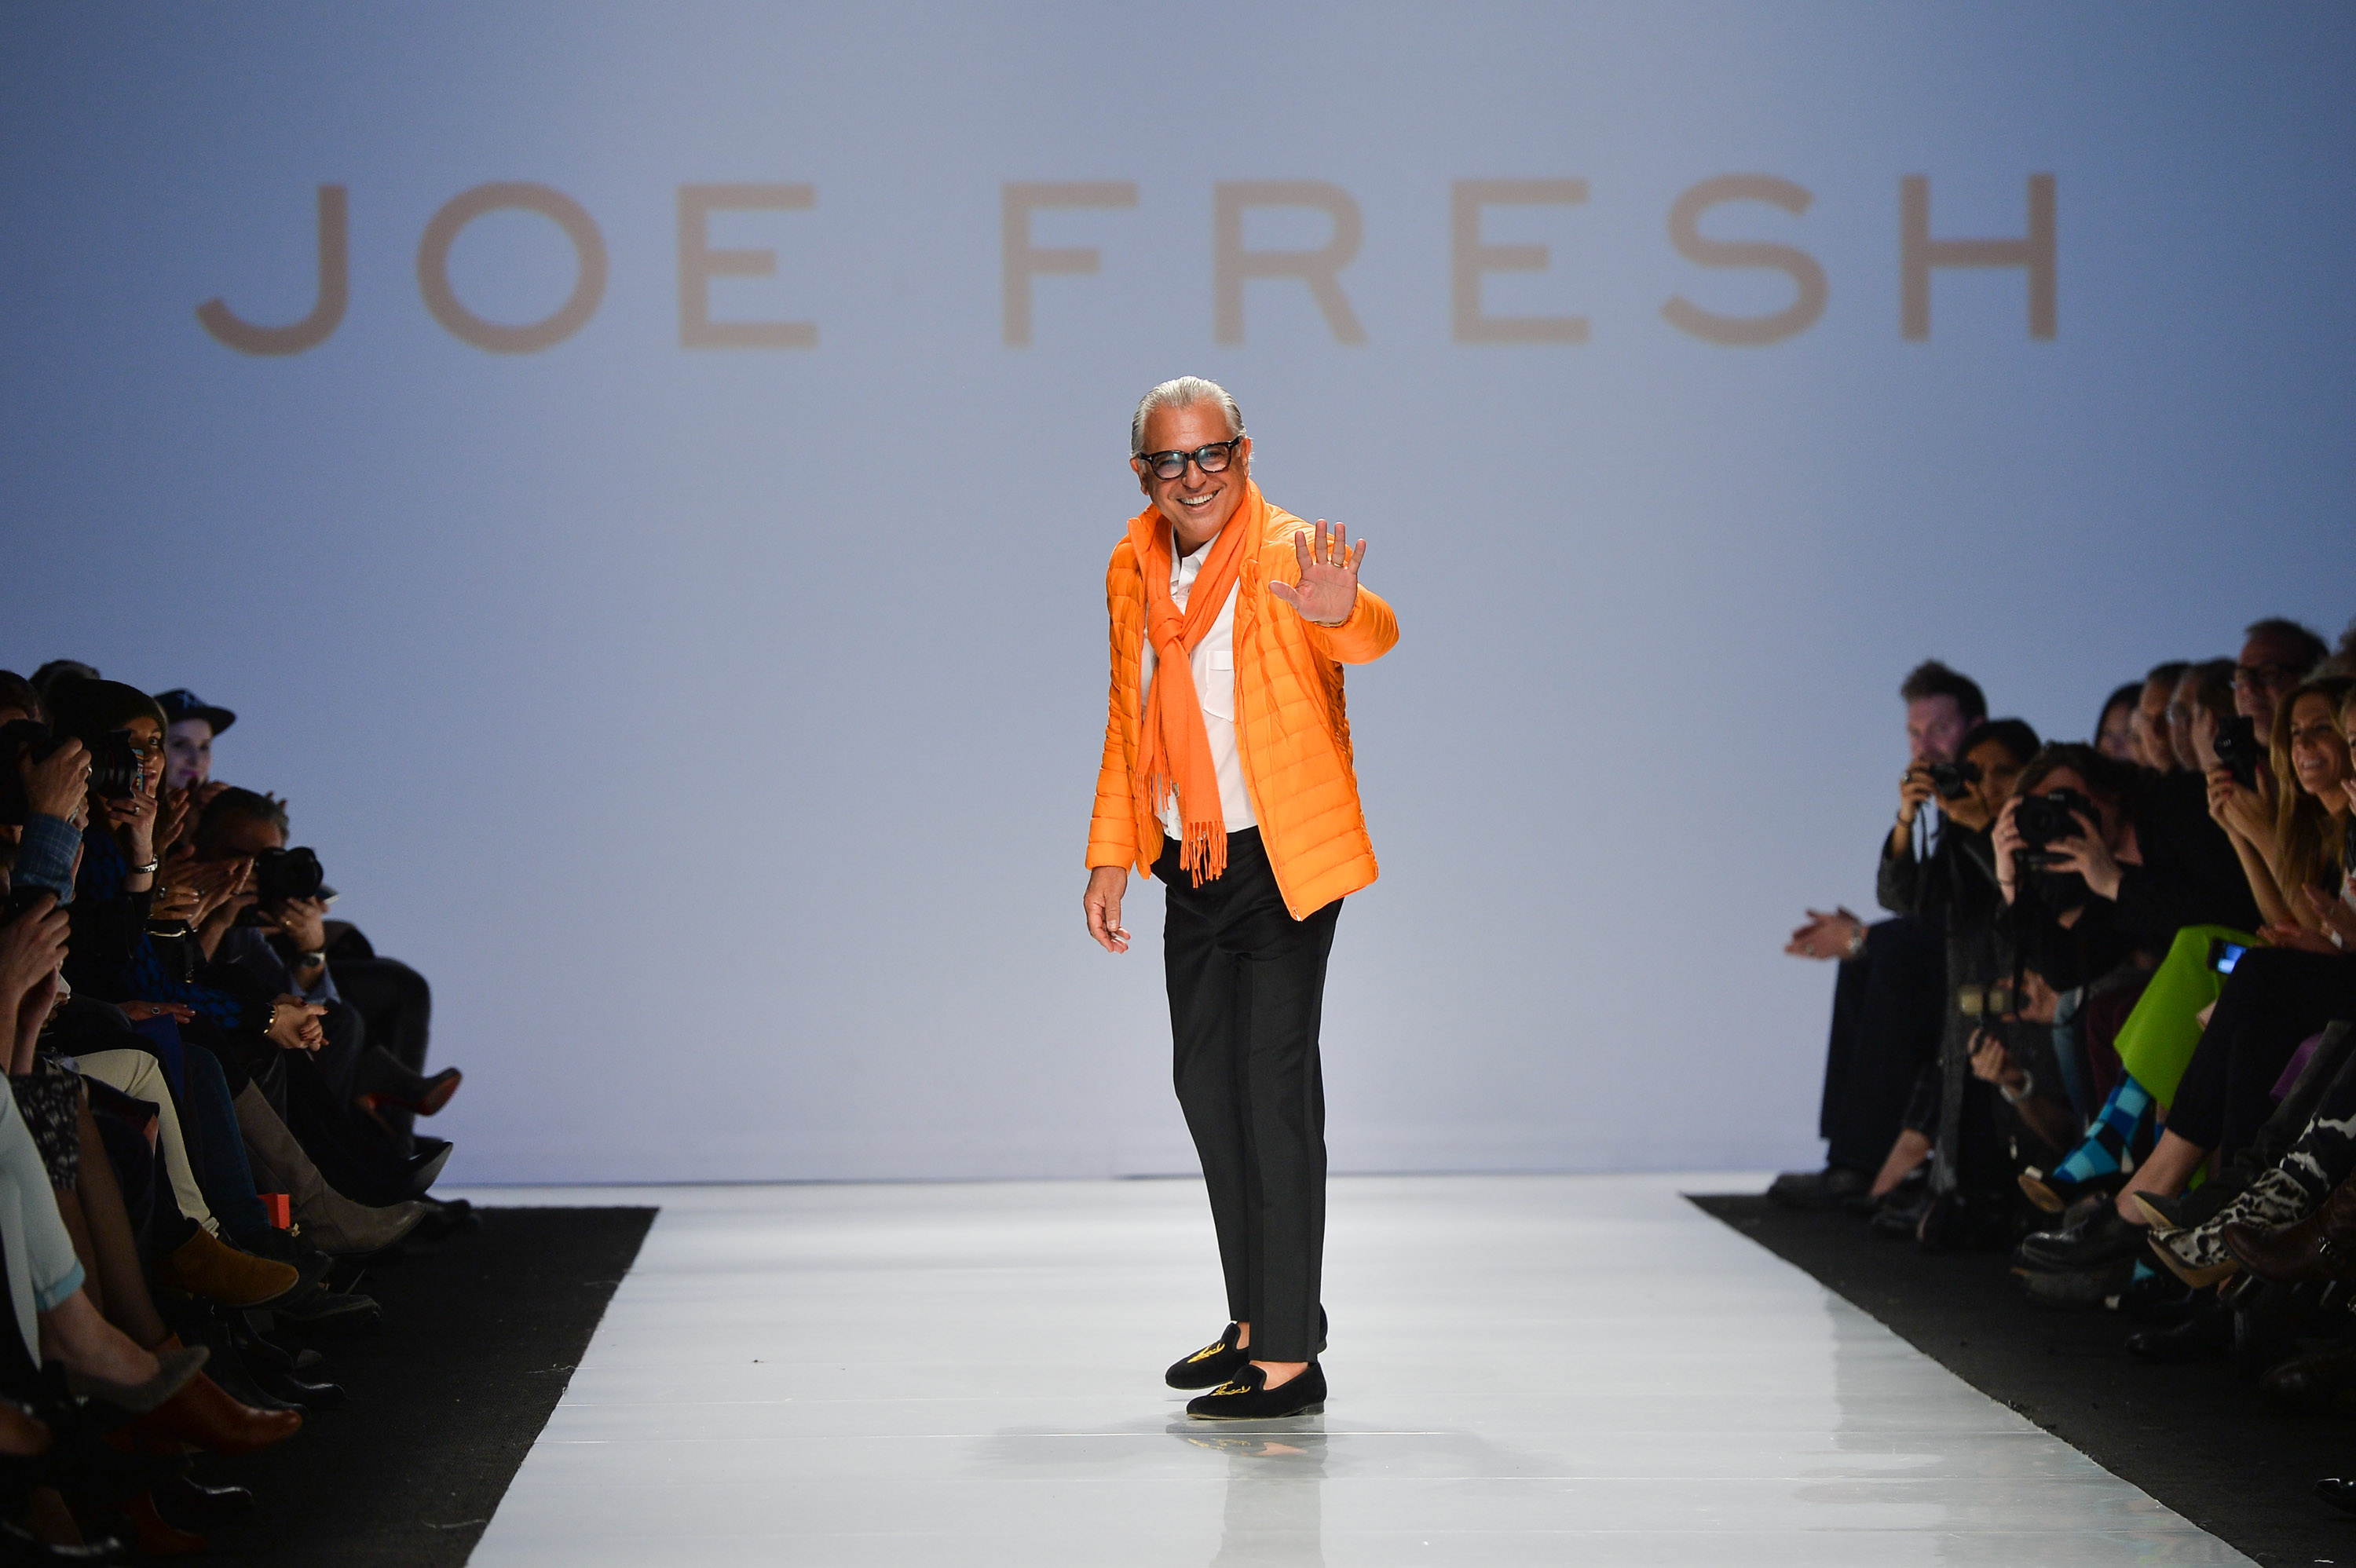 JOE FRESH FOUNDER JOE MIMRAN TO JOIN CBC'S DRAGONS' DEN